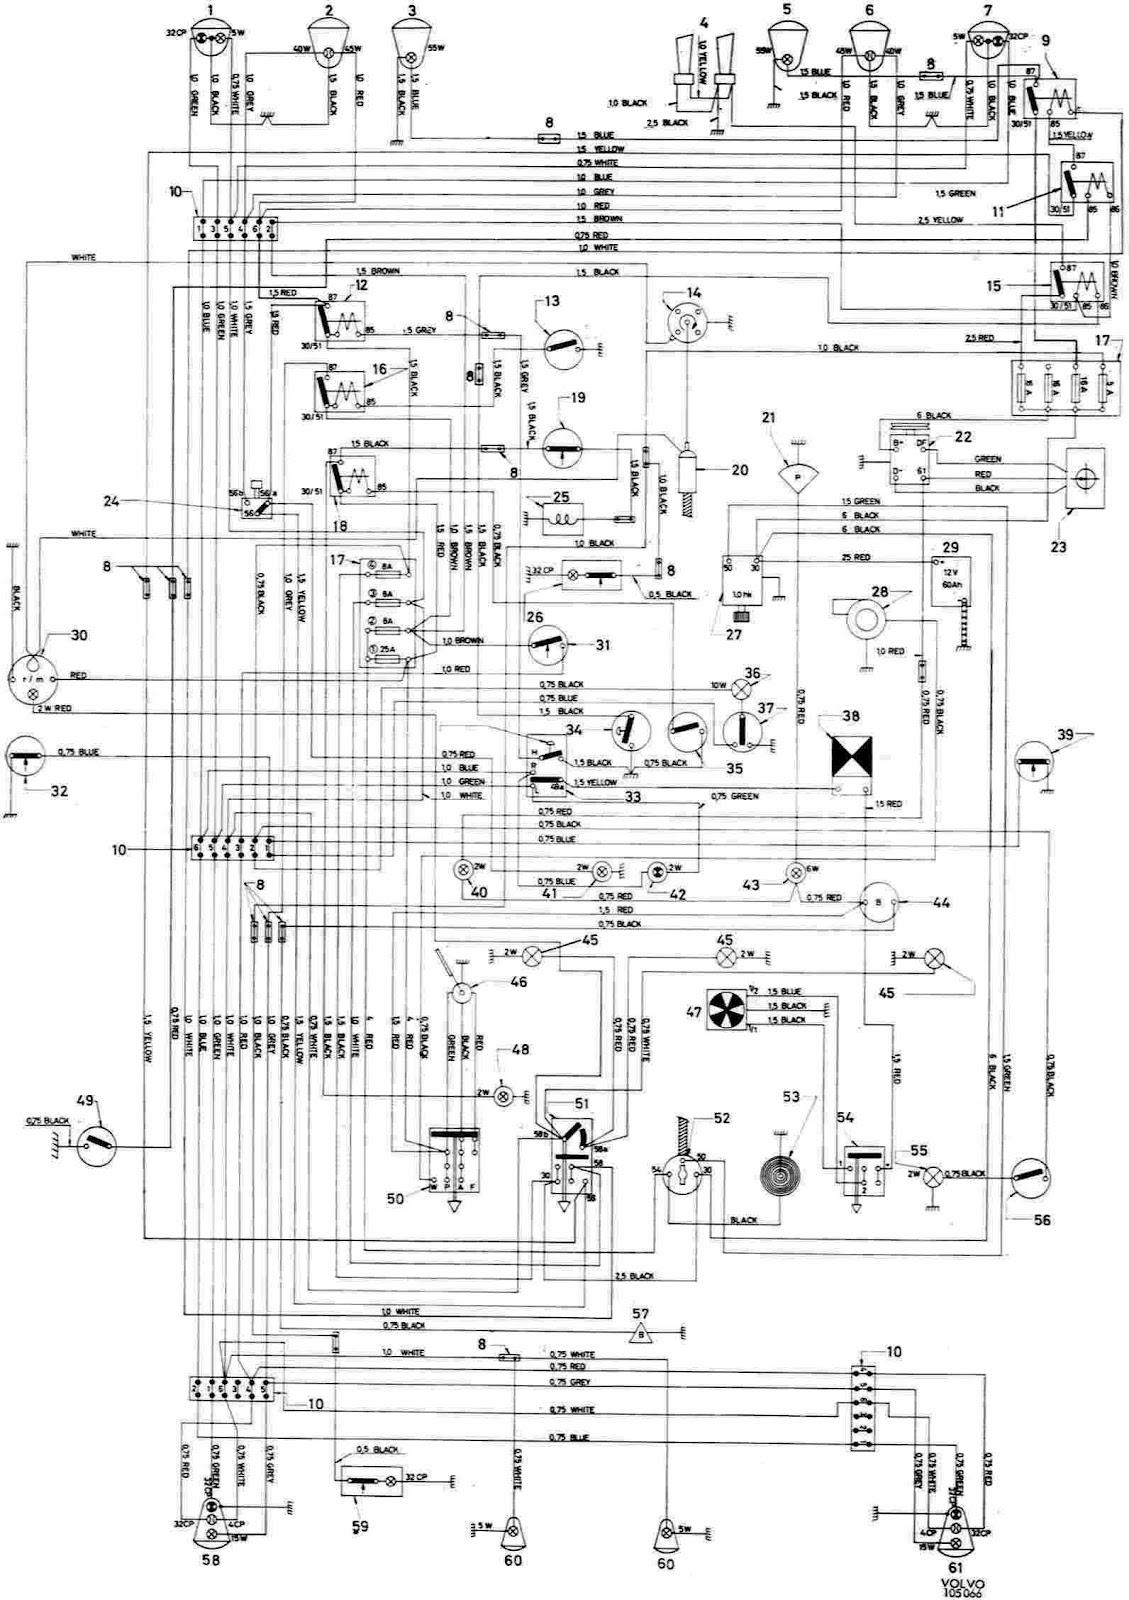 Volvo 123 GT Complete Wiring Diagram | All about Wiring